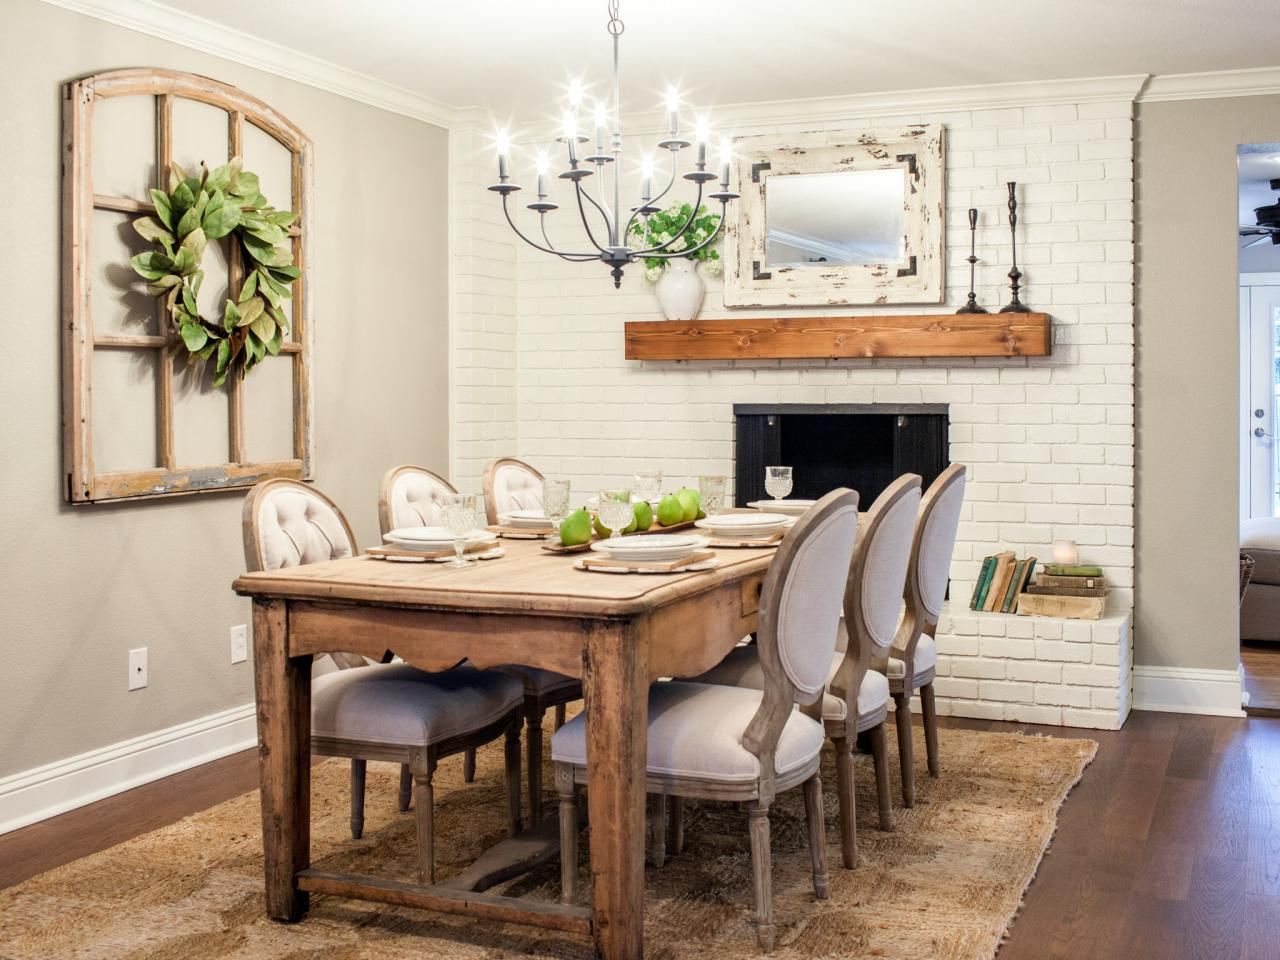 A Fixer Upper Dining Room & Magnolia Wreath | The Everyday Home